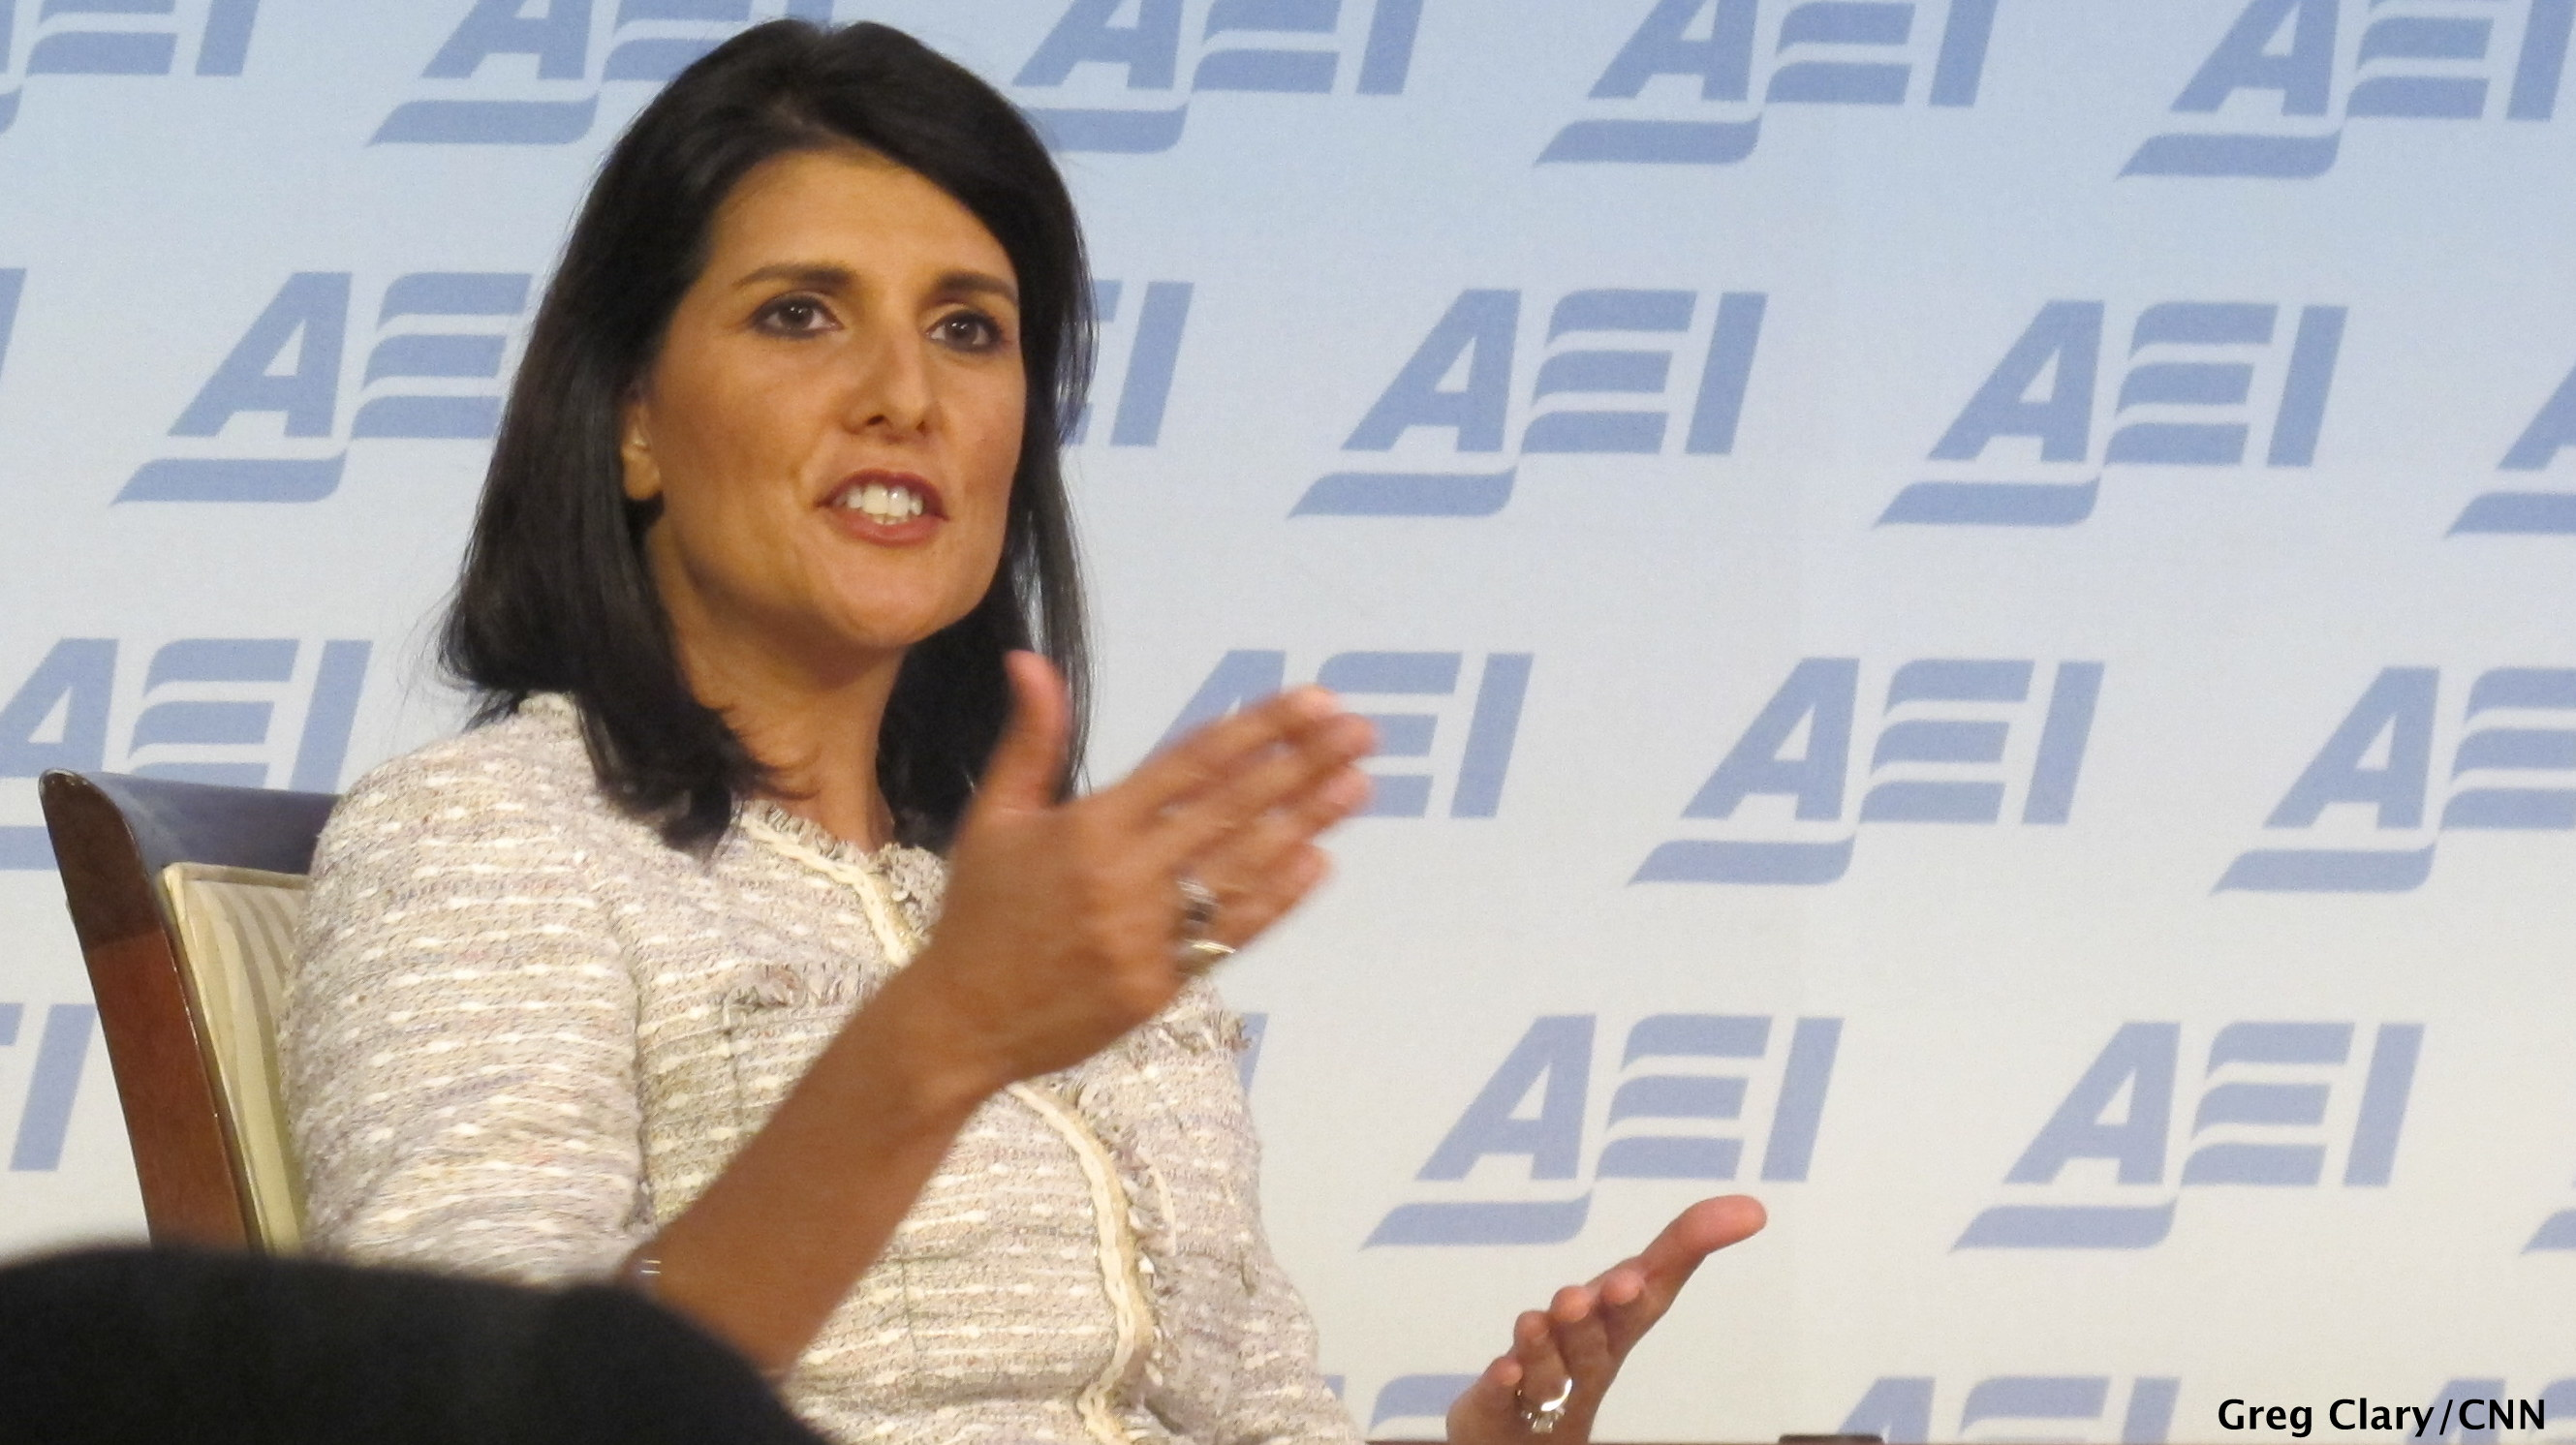 Haley talks Romney and tea party support